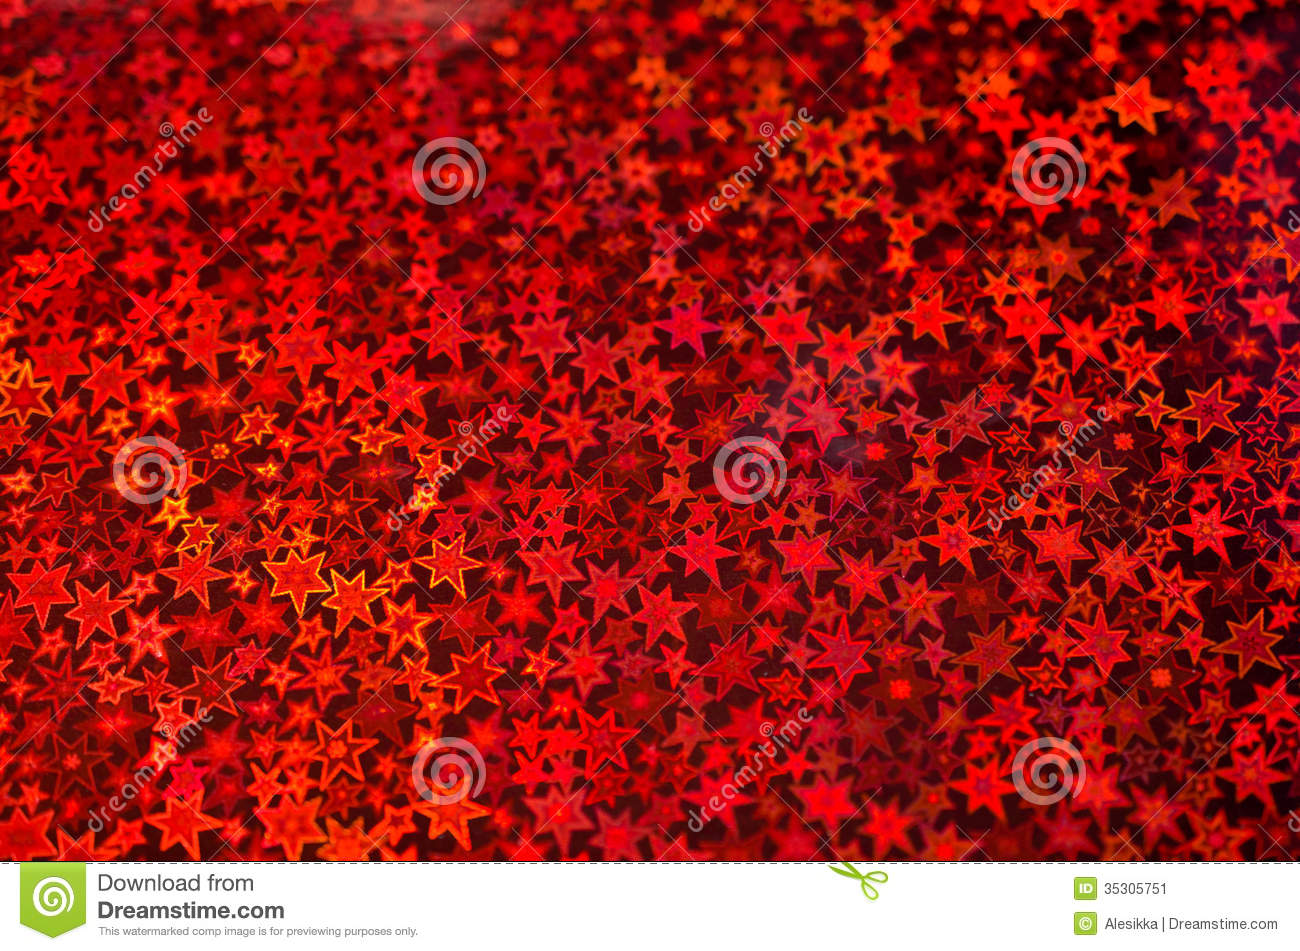 red star background - photo #46